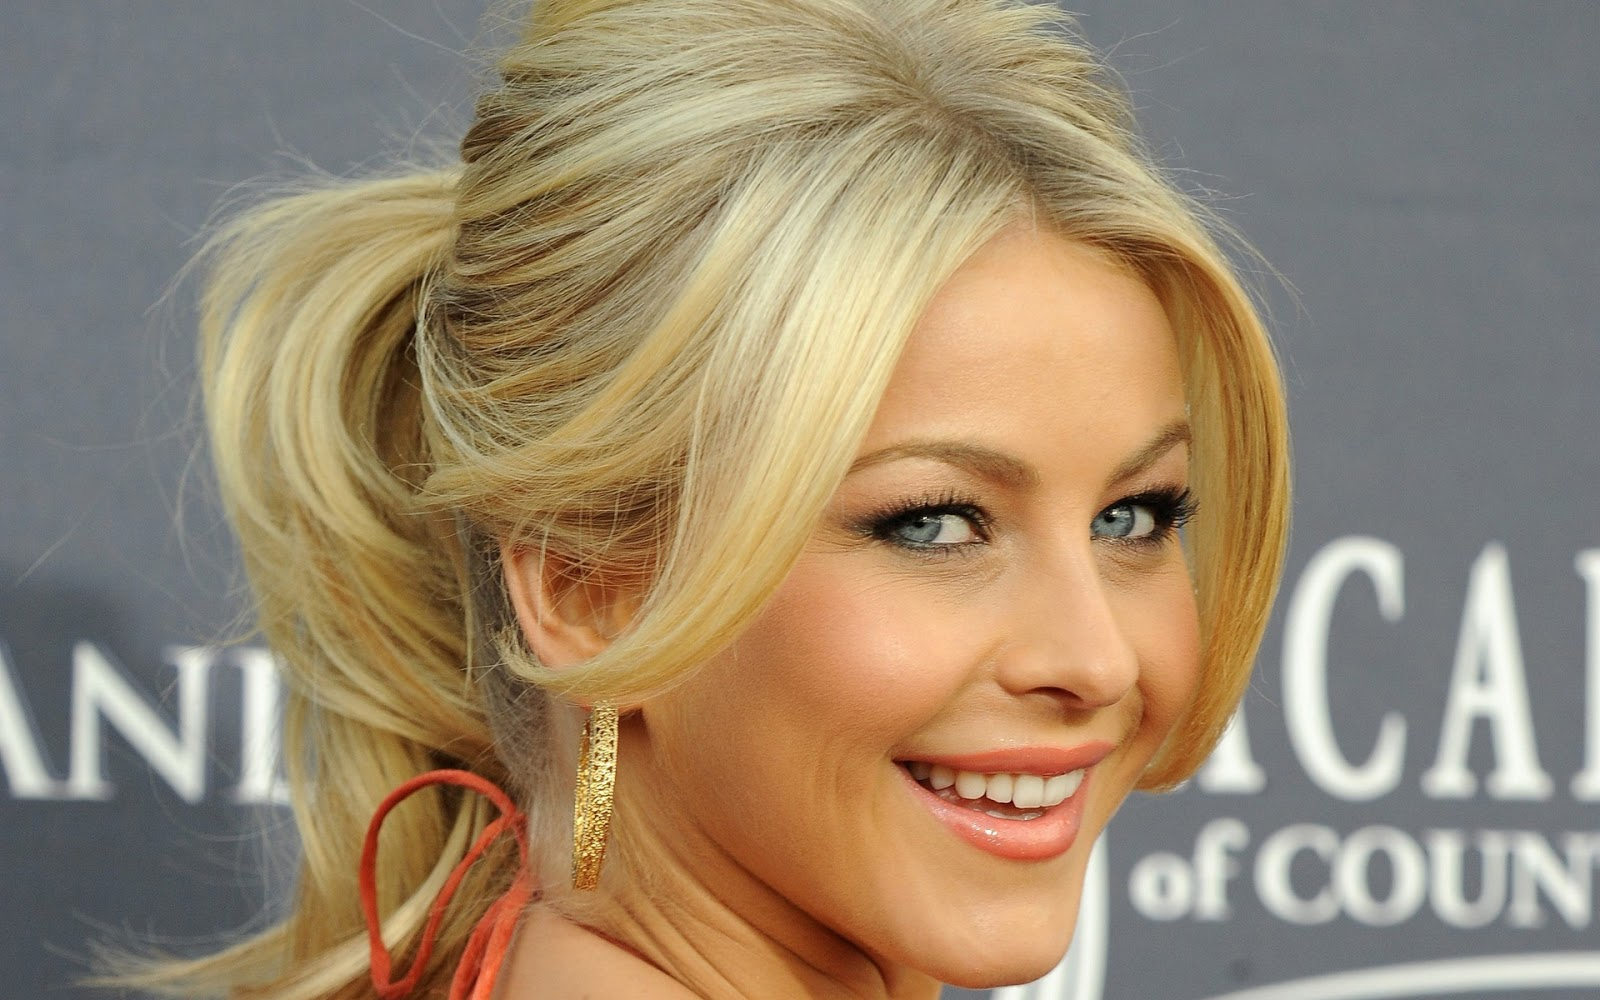 ... Julianne Hough cute style, Julianne Hough beautiful pictures, Julianne